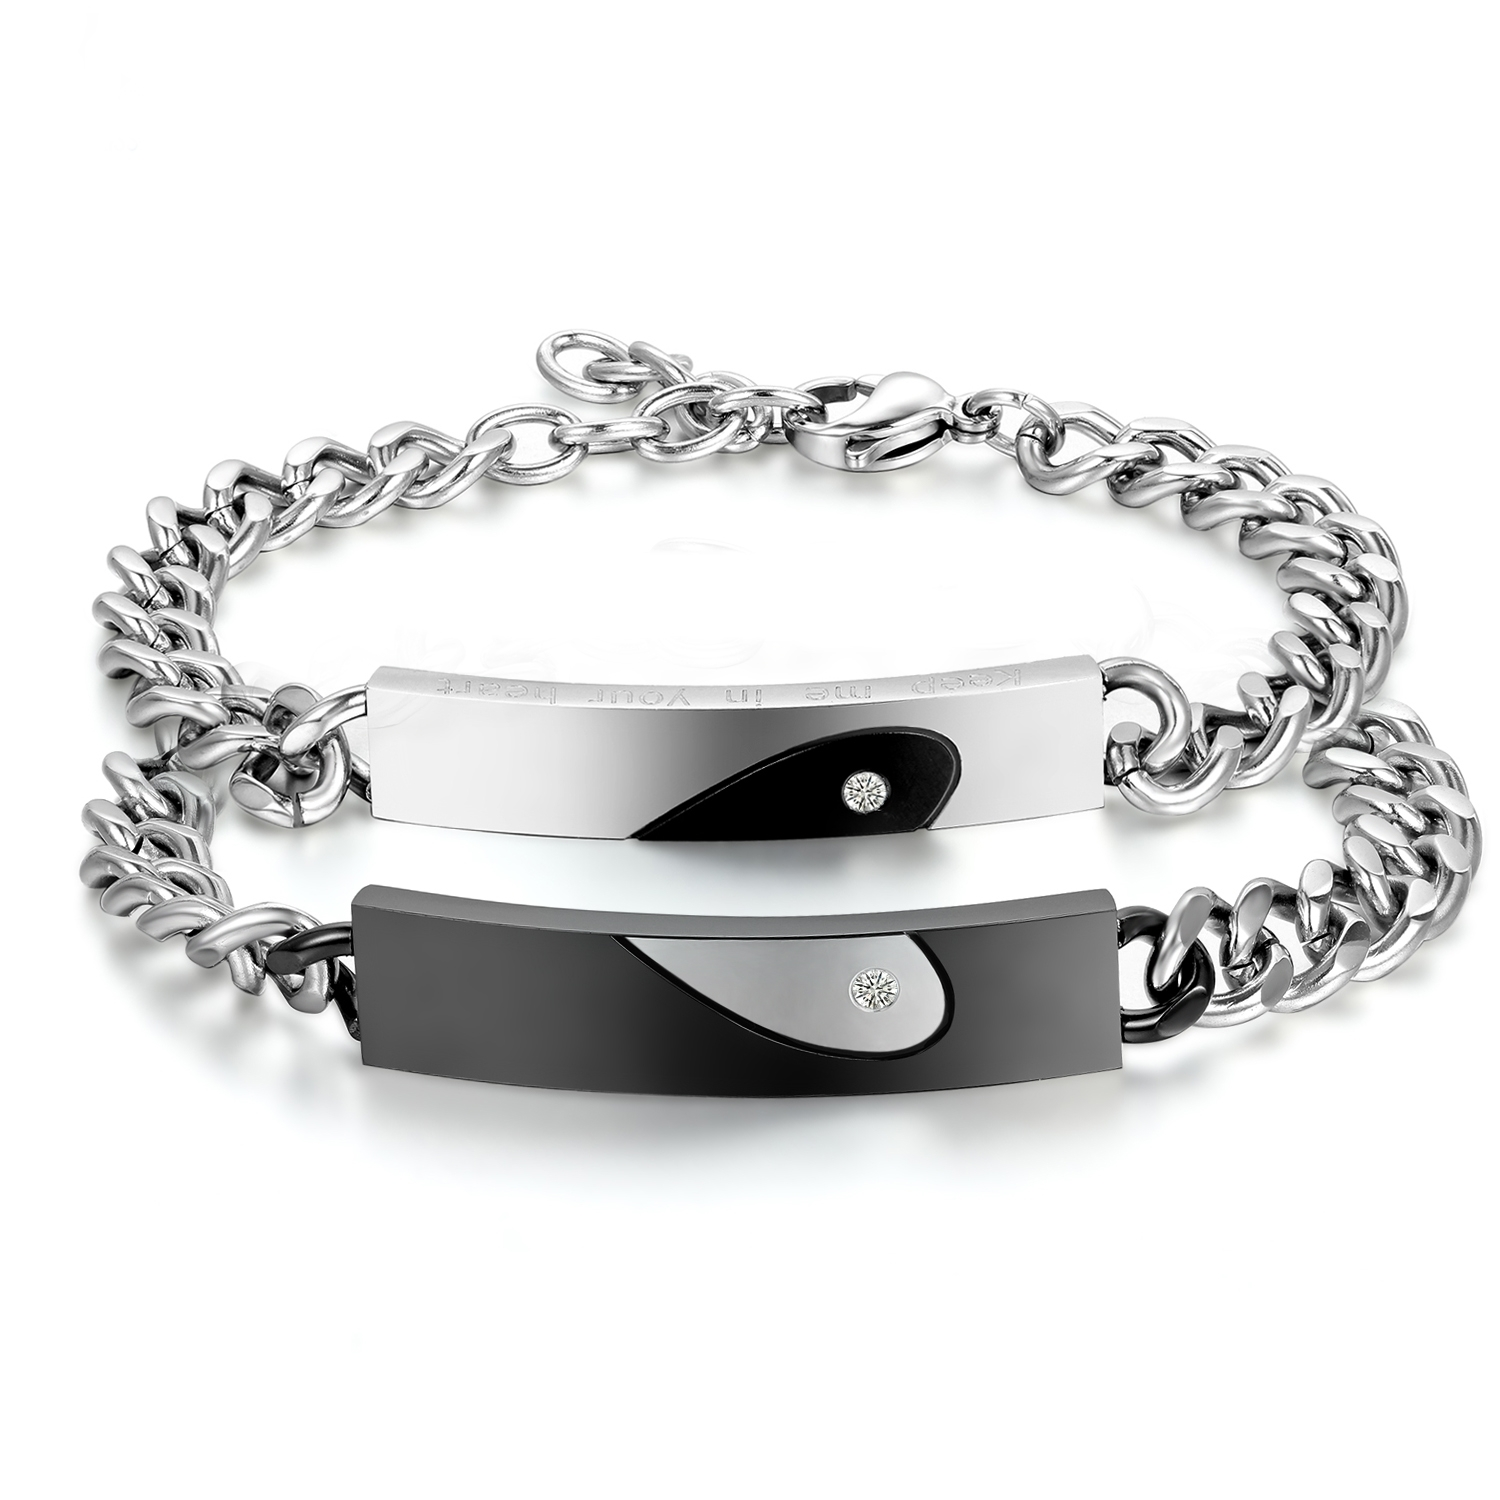 design women cheap silver jewellerykenzo kenzo p in hindi shoesluxuriant shoes jewellery luxuriant bracelet